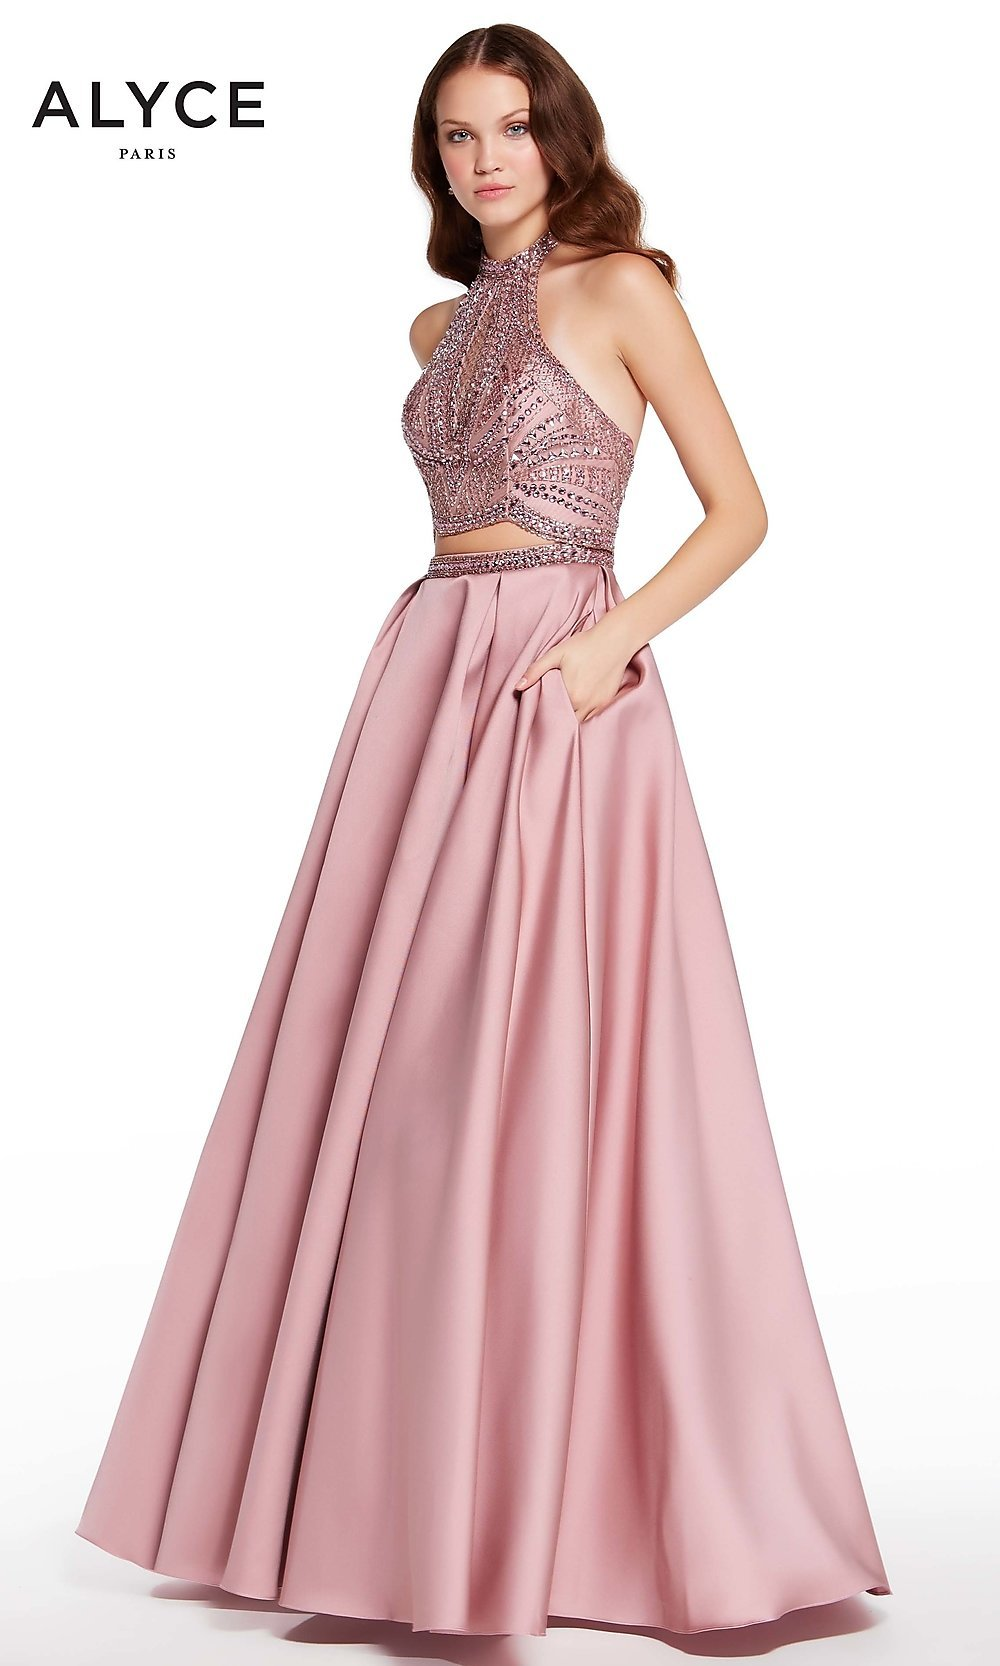 c4212478d8 Long Two-Piece Prom Dress with Halter Top by Alyce